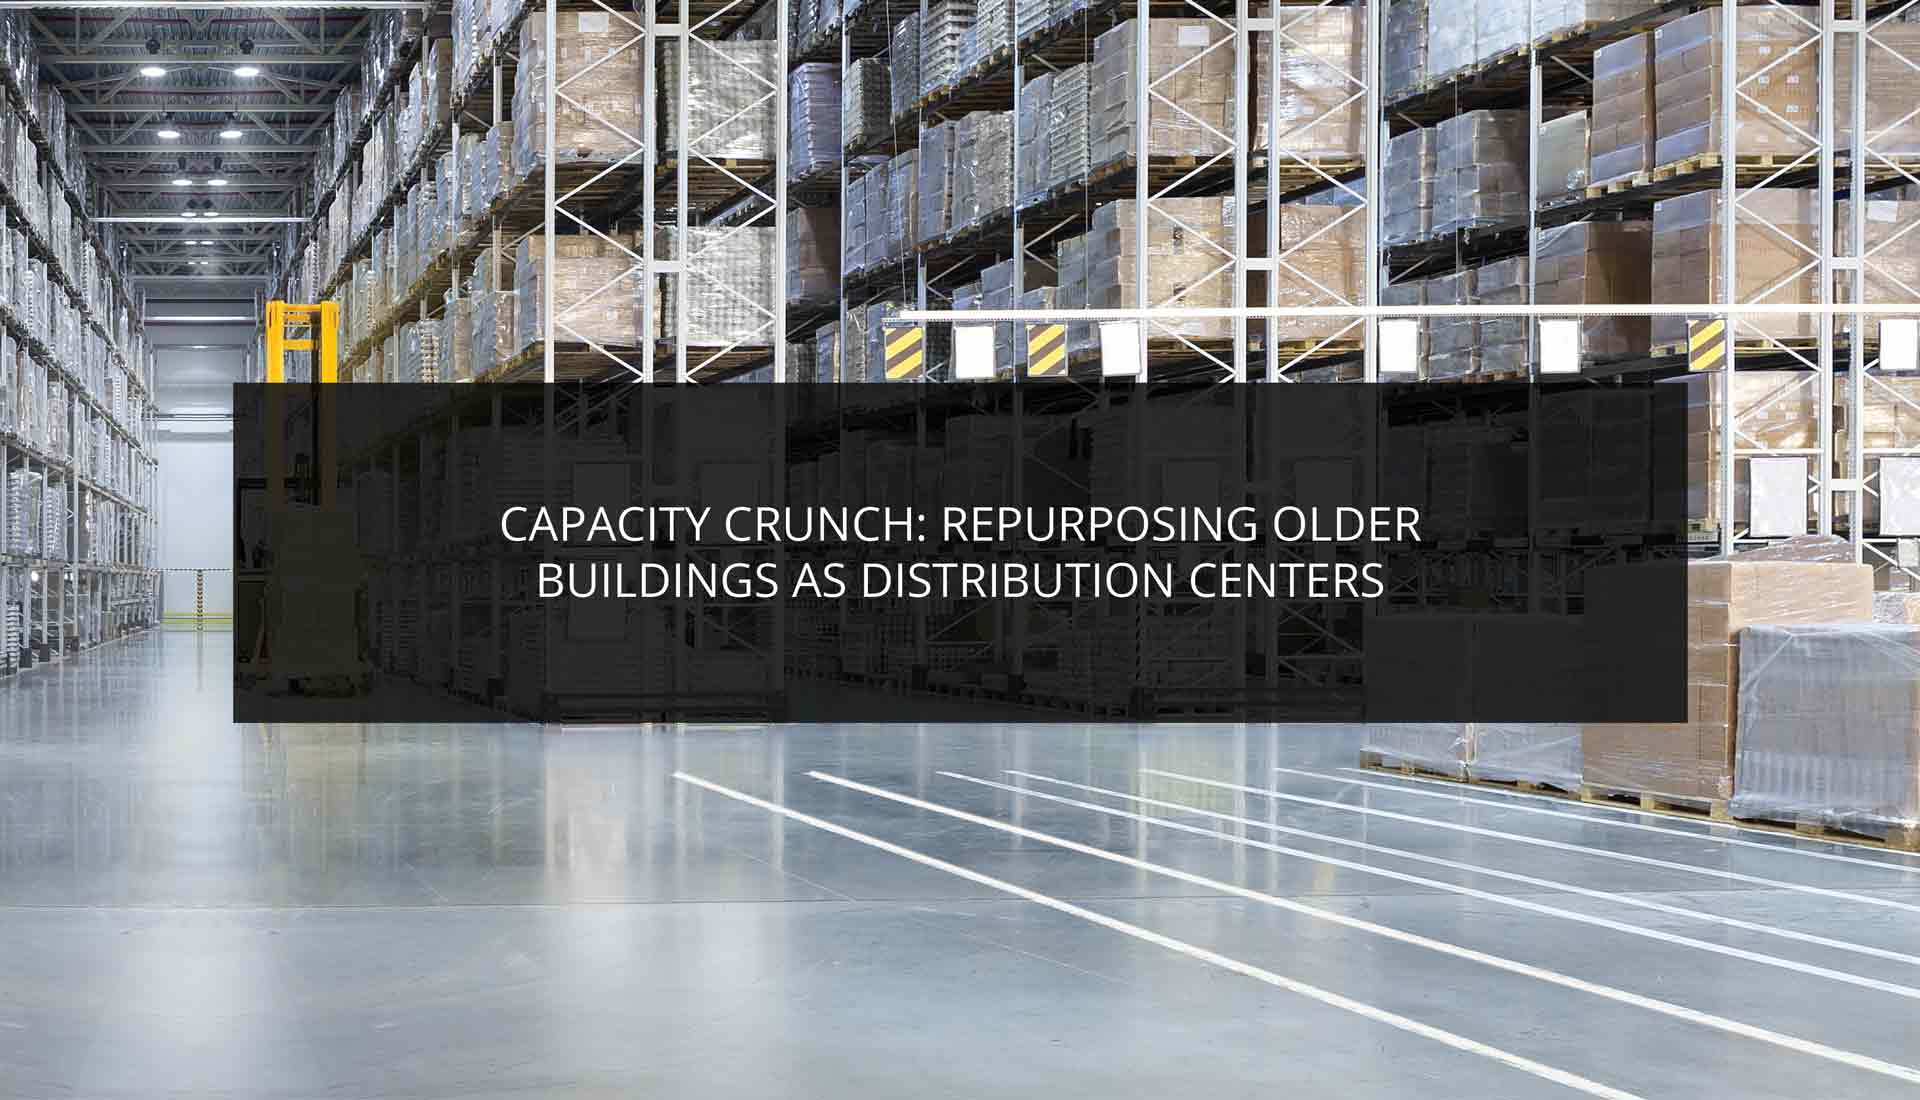 Capacity Crunch: Repurposing Older Buildings as Distribution Centers